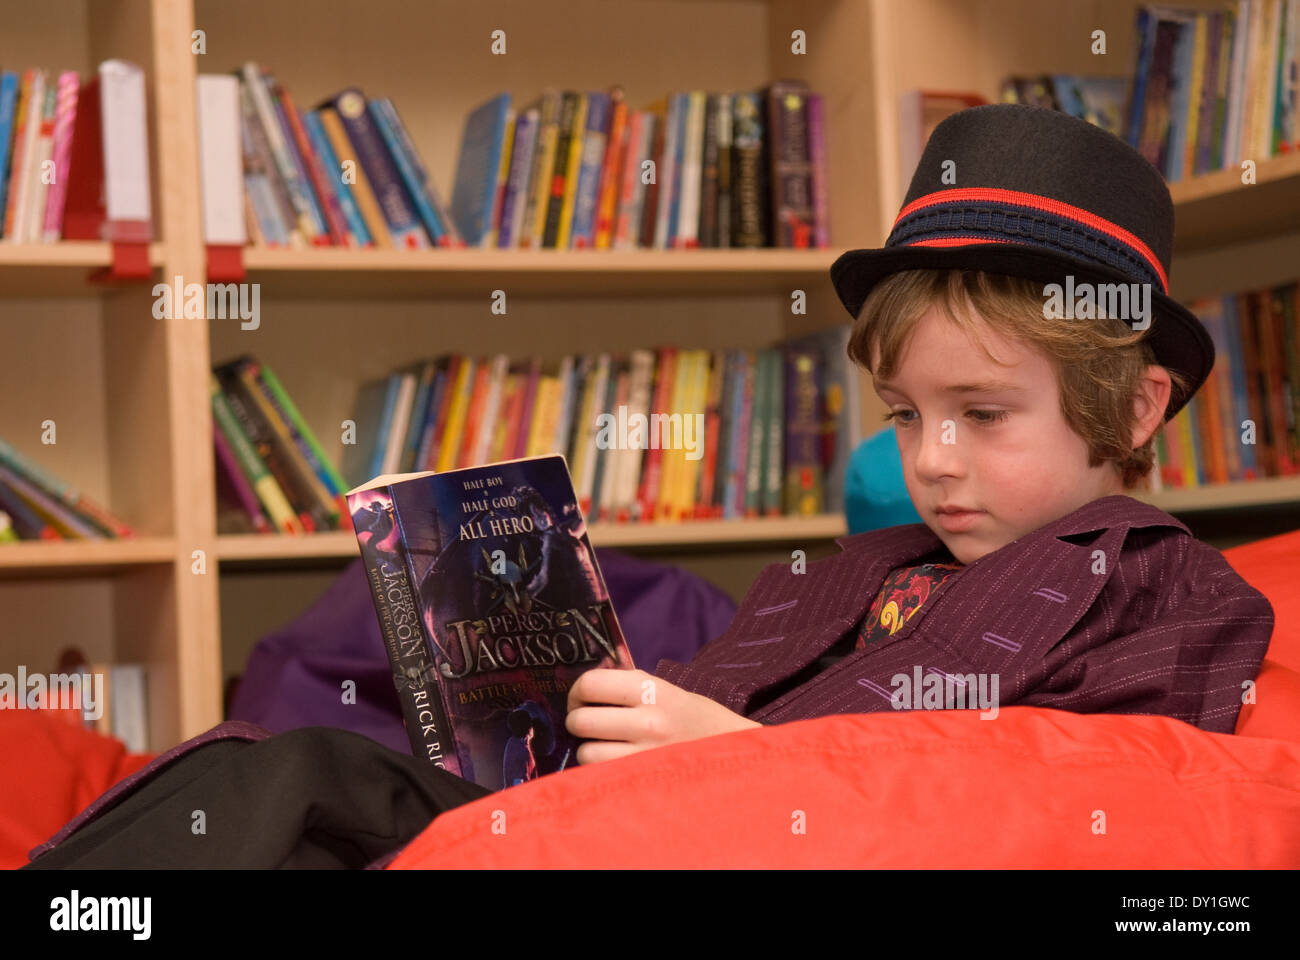 Worksheet Books 7 Year Old 7 year old pupil reading in school library costume for world book day haslemere surrey uk